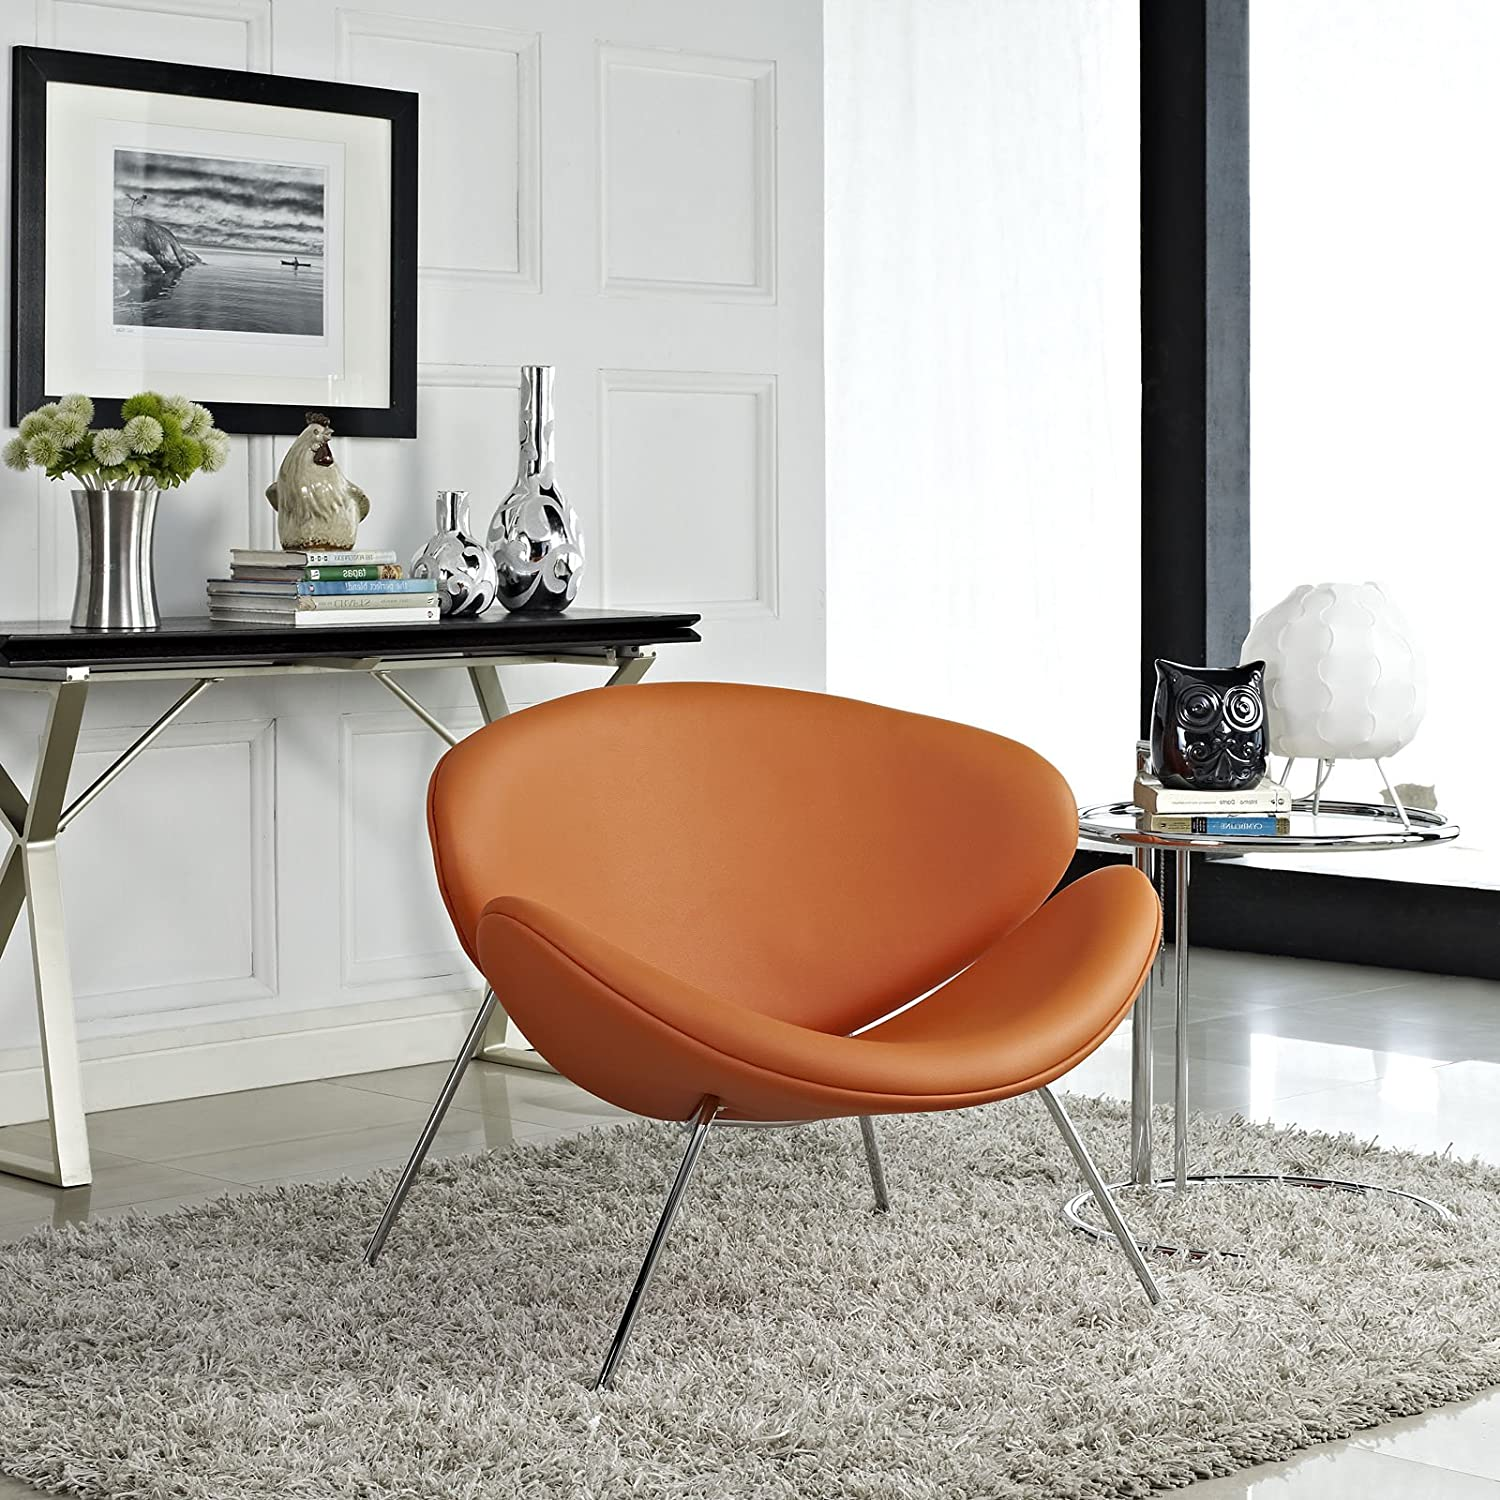 Amazon.com: Modway Nutshell Mid Century Modern Faux Leather Lounge Chair In  Orange: Kitchen U0026 Dining